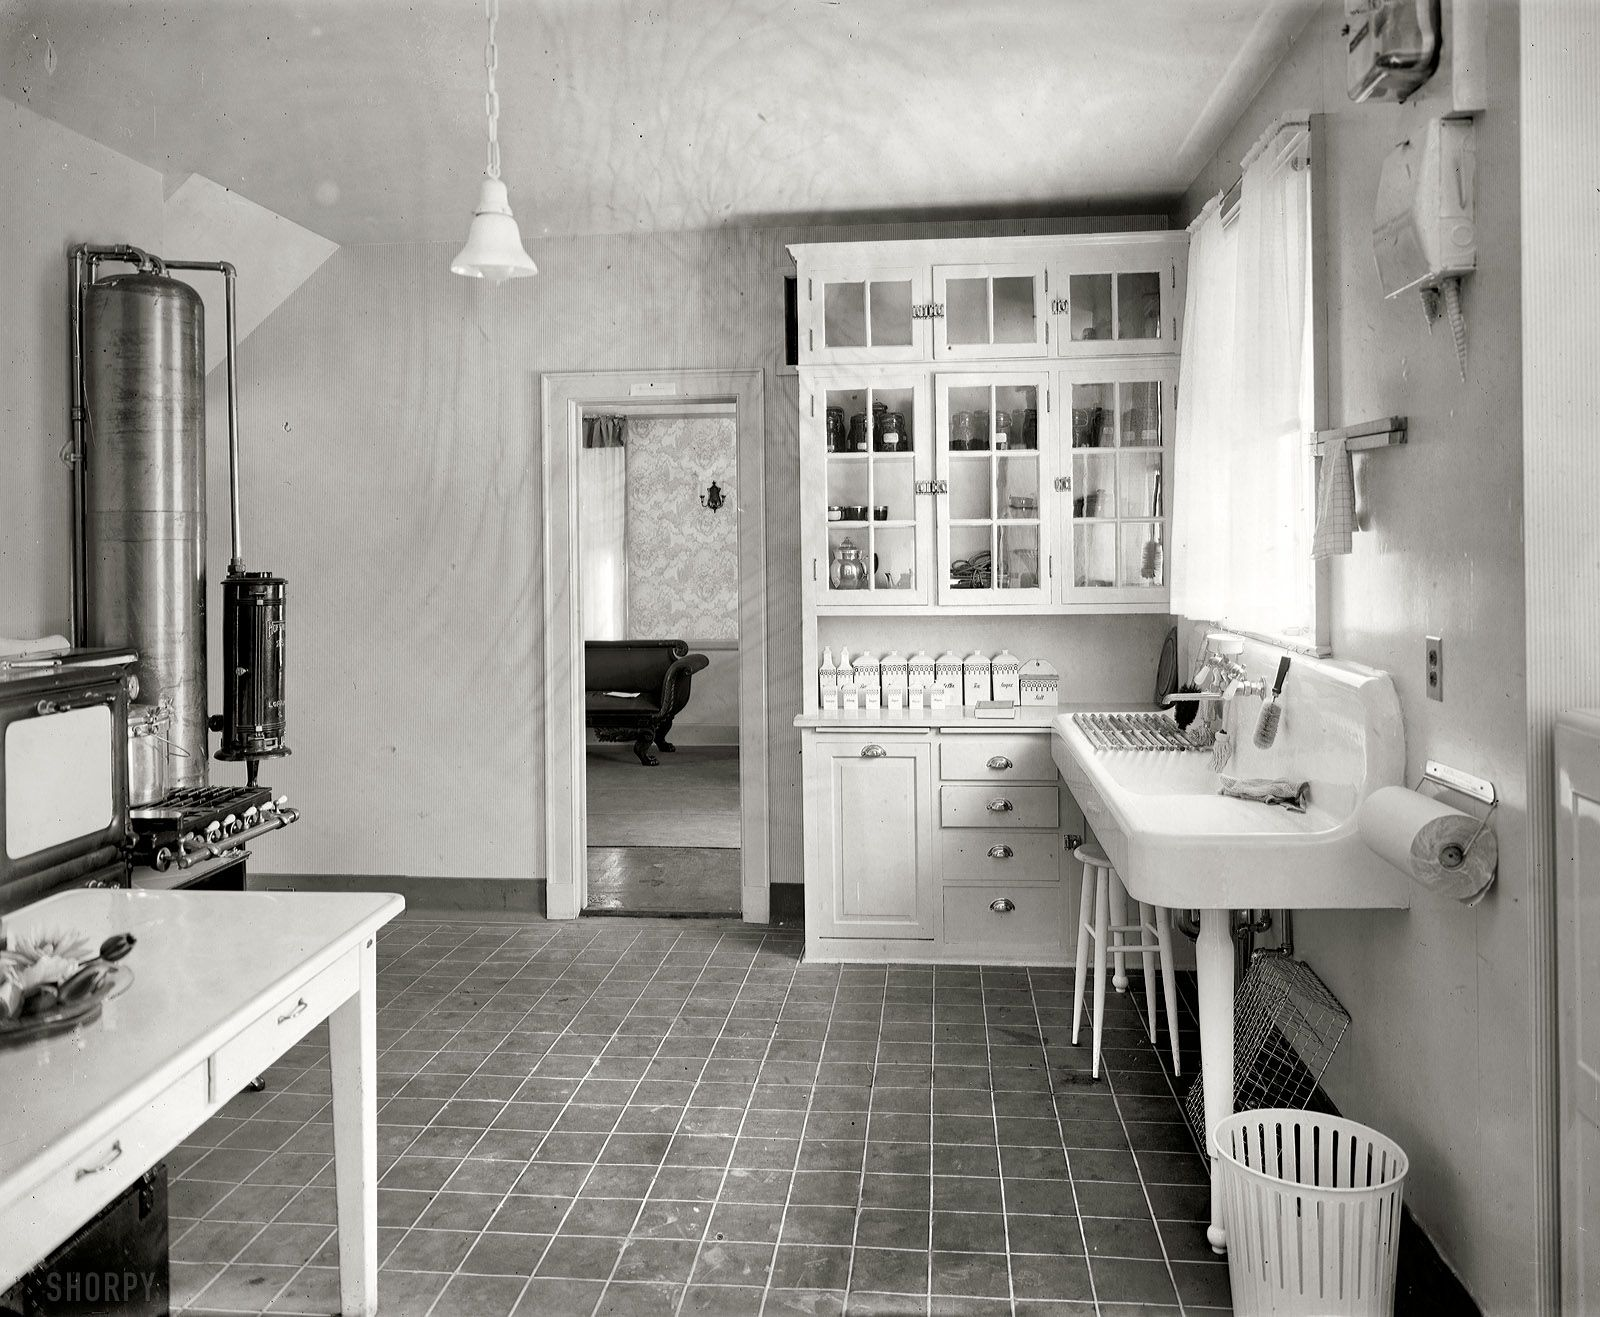 Image gallery 1920 bungalow kitchen for 1920s kitchen remodel